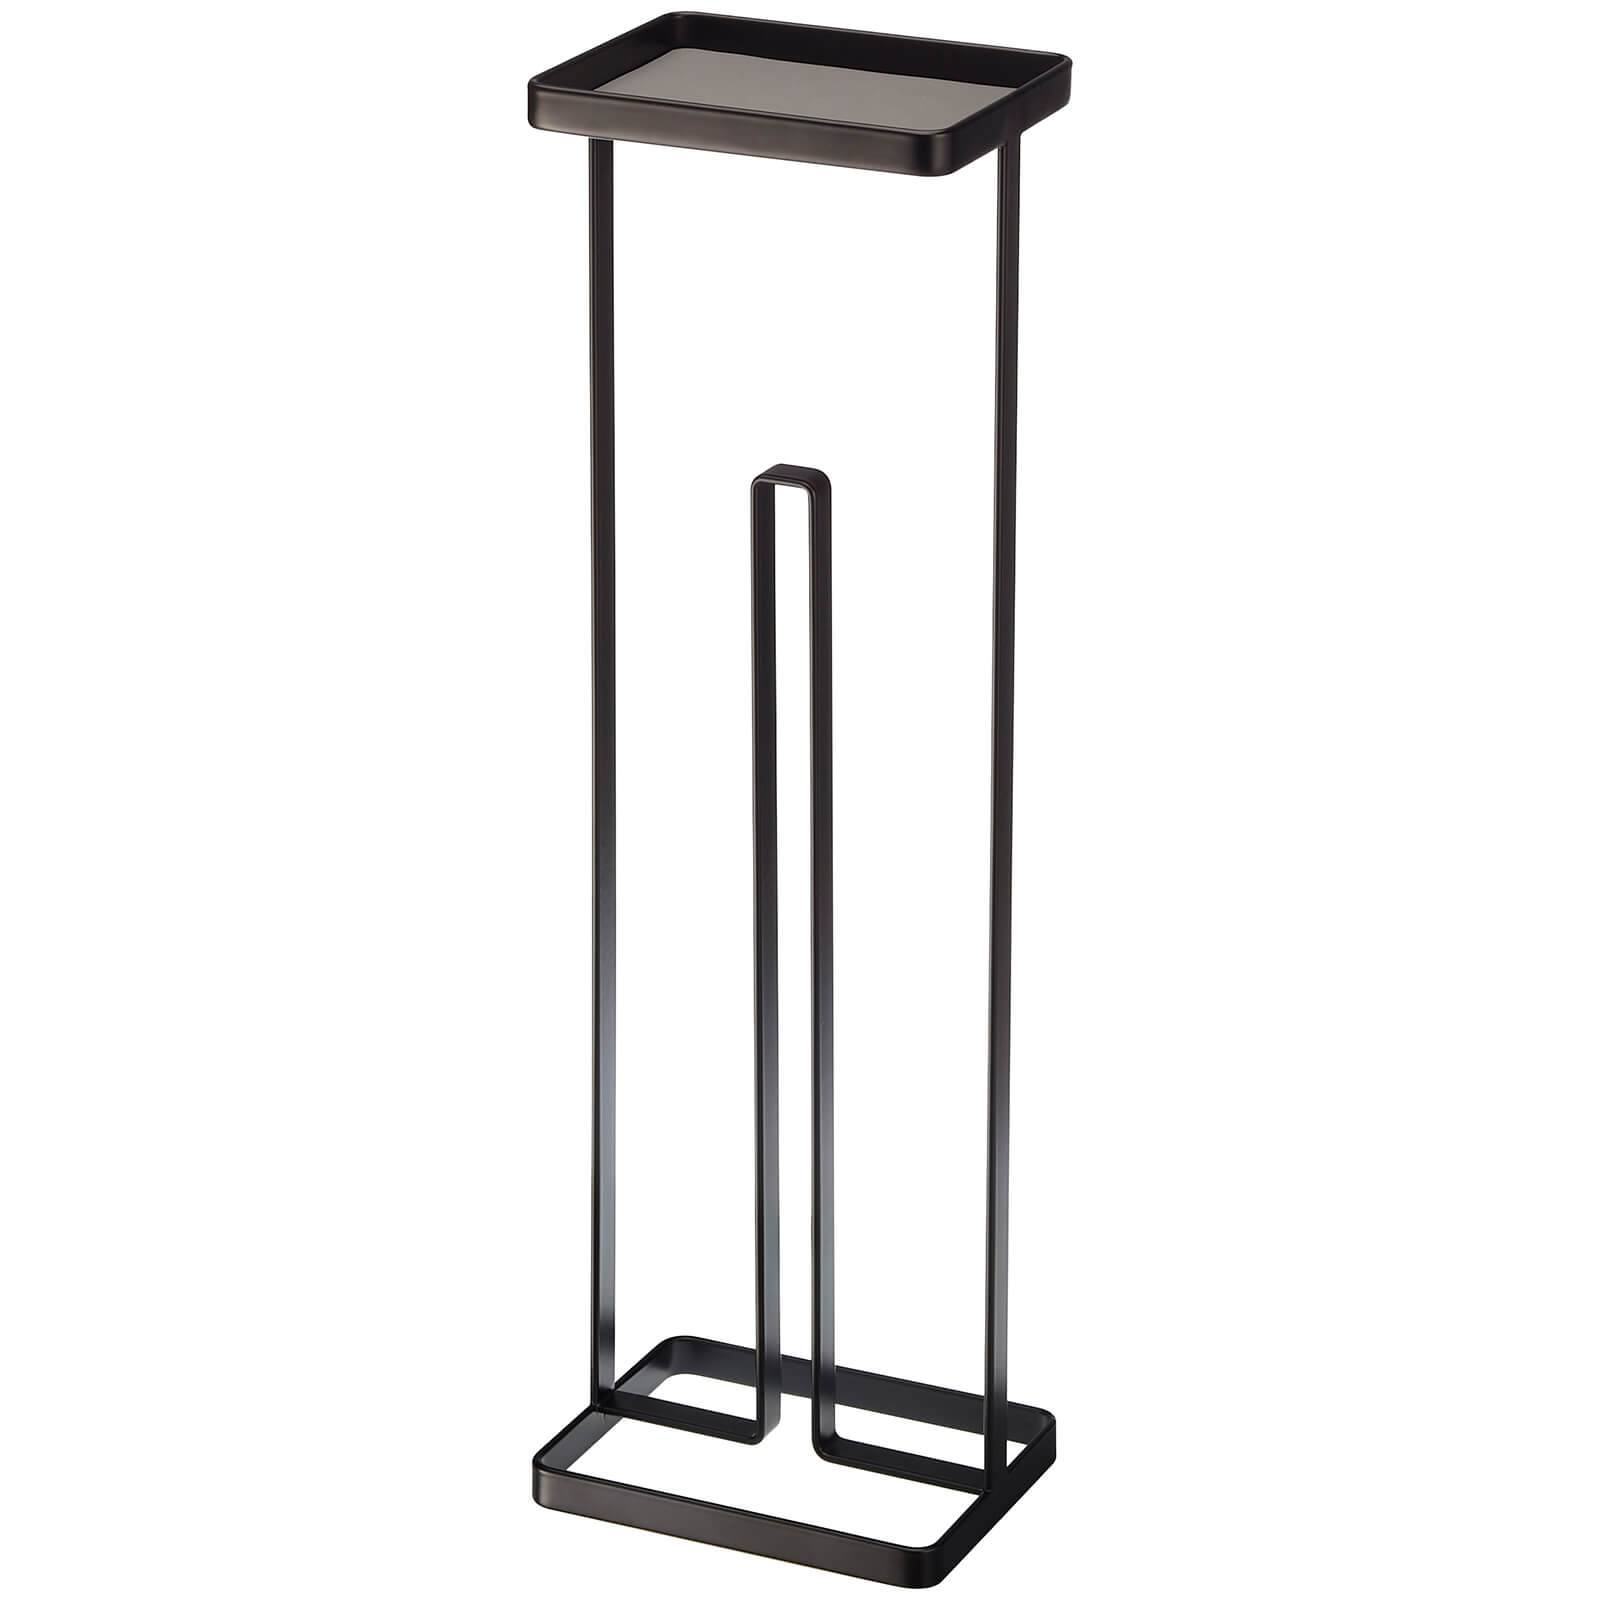 Yamazaki Tower Toilet Paper Stand with Tray - Black